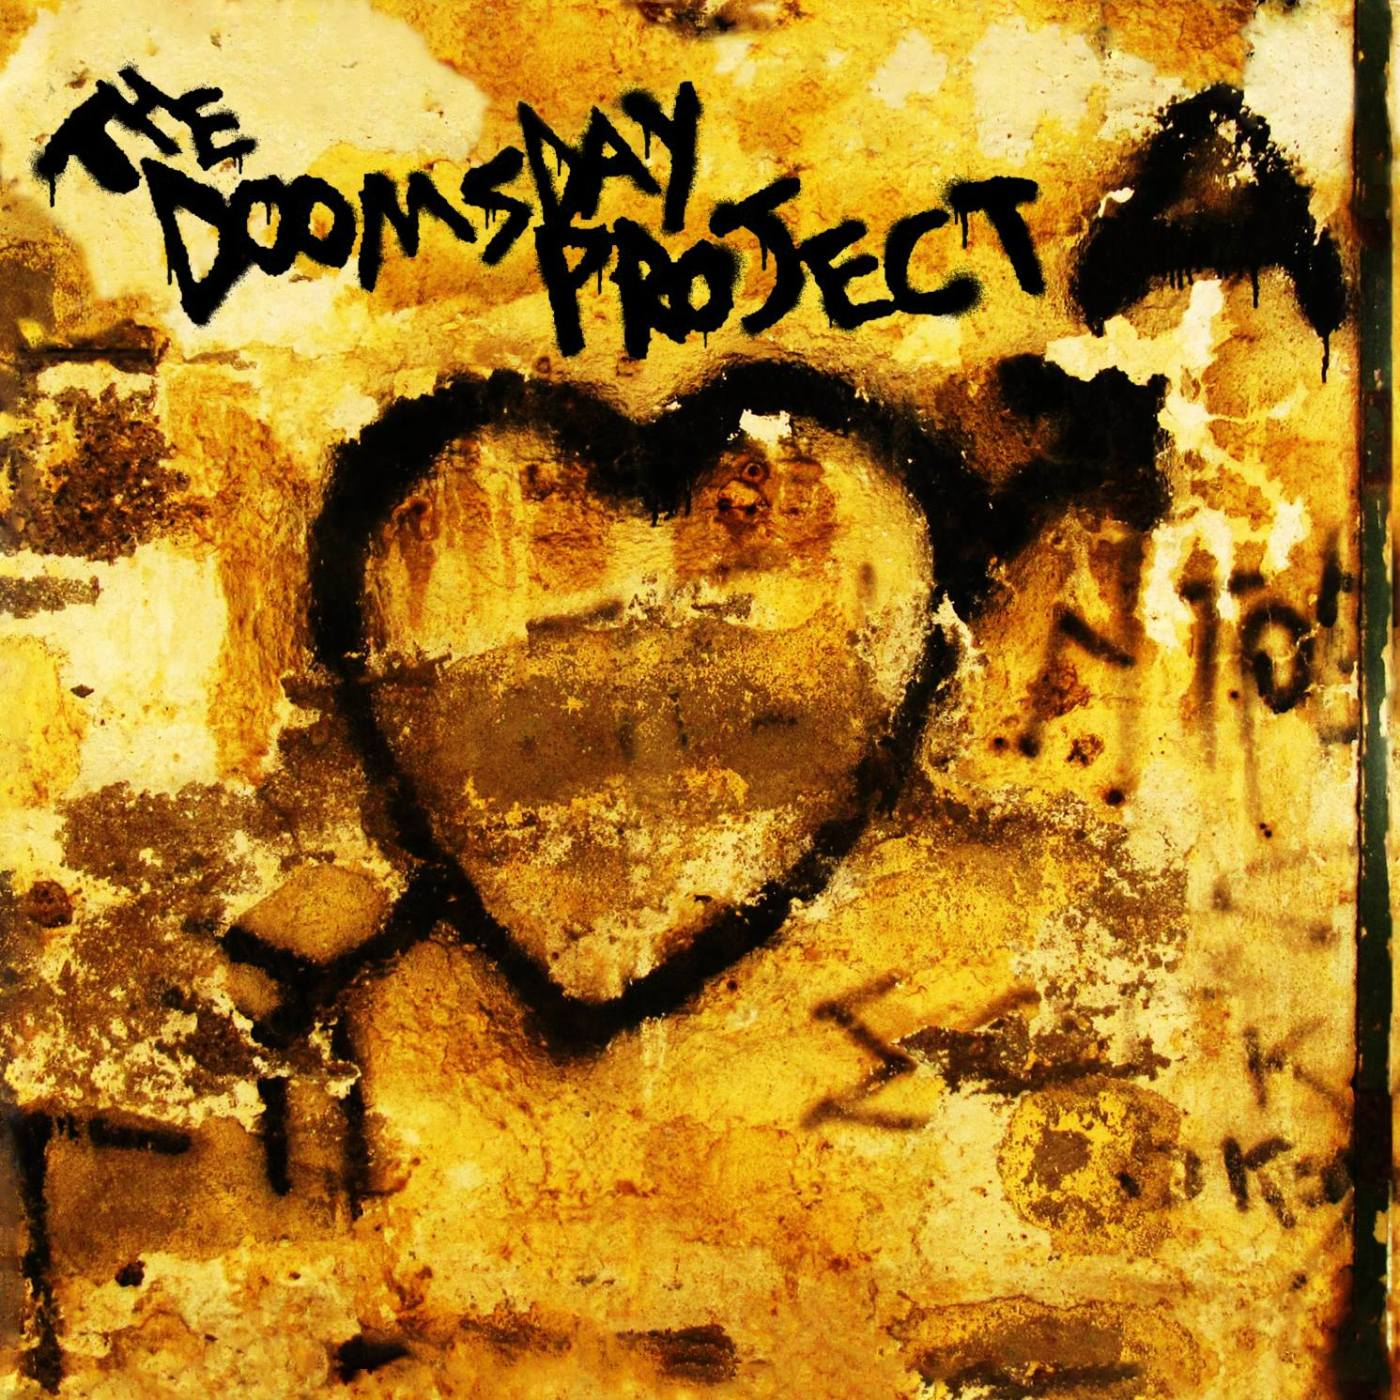 The Doomsday Project album cover